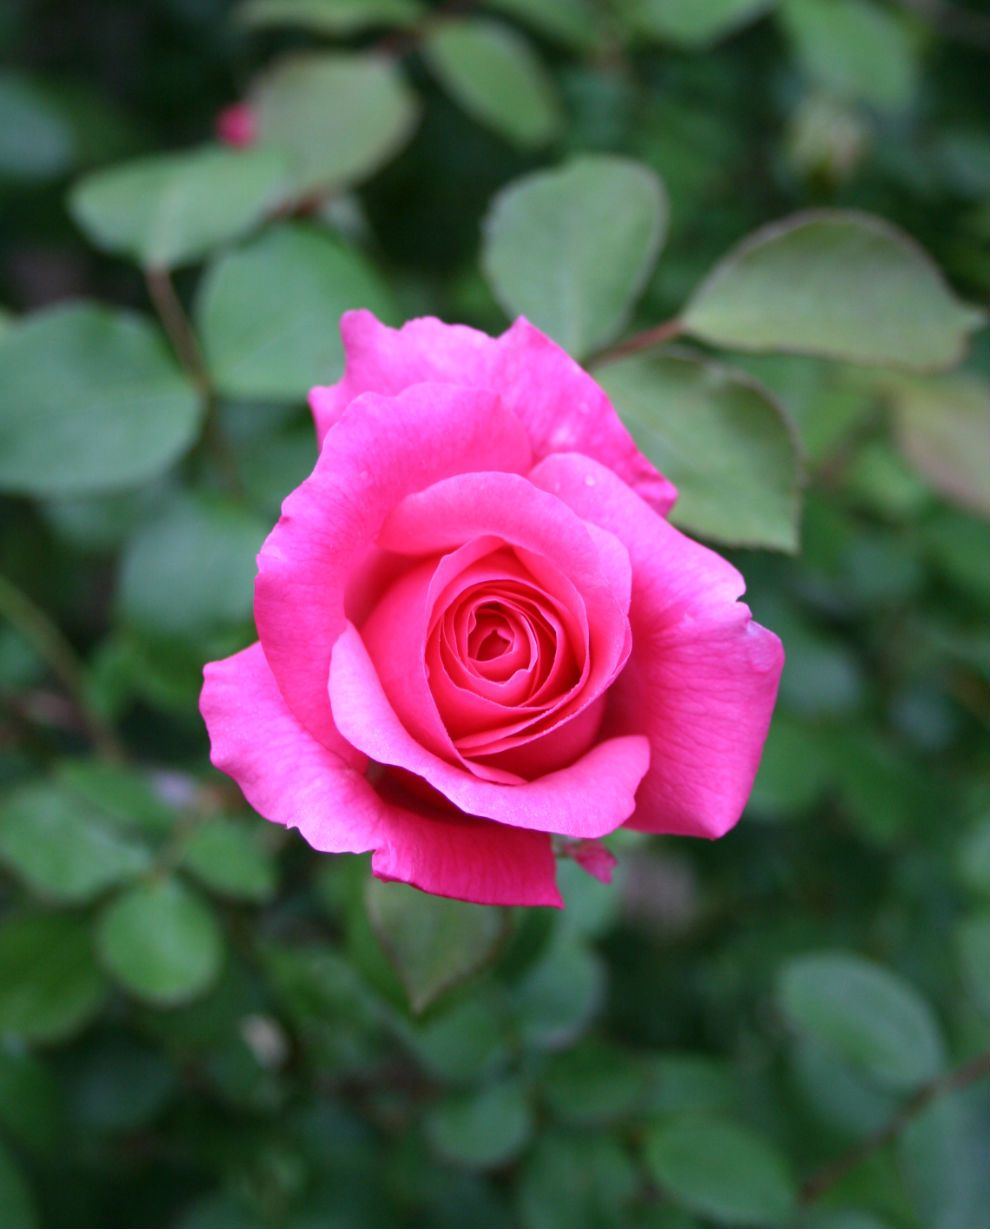 How to trim roses my latest article on pruning rose bushes roses